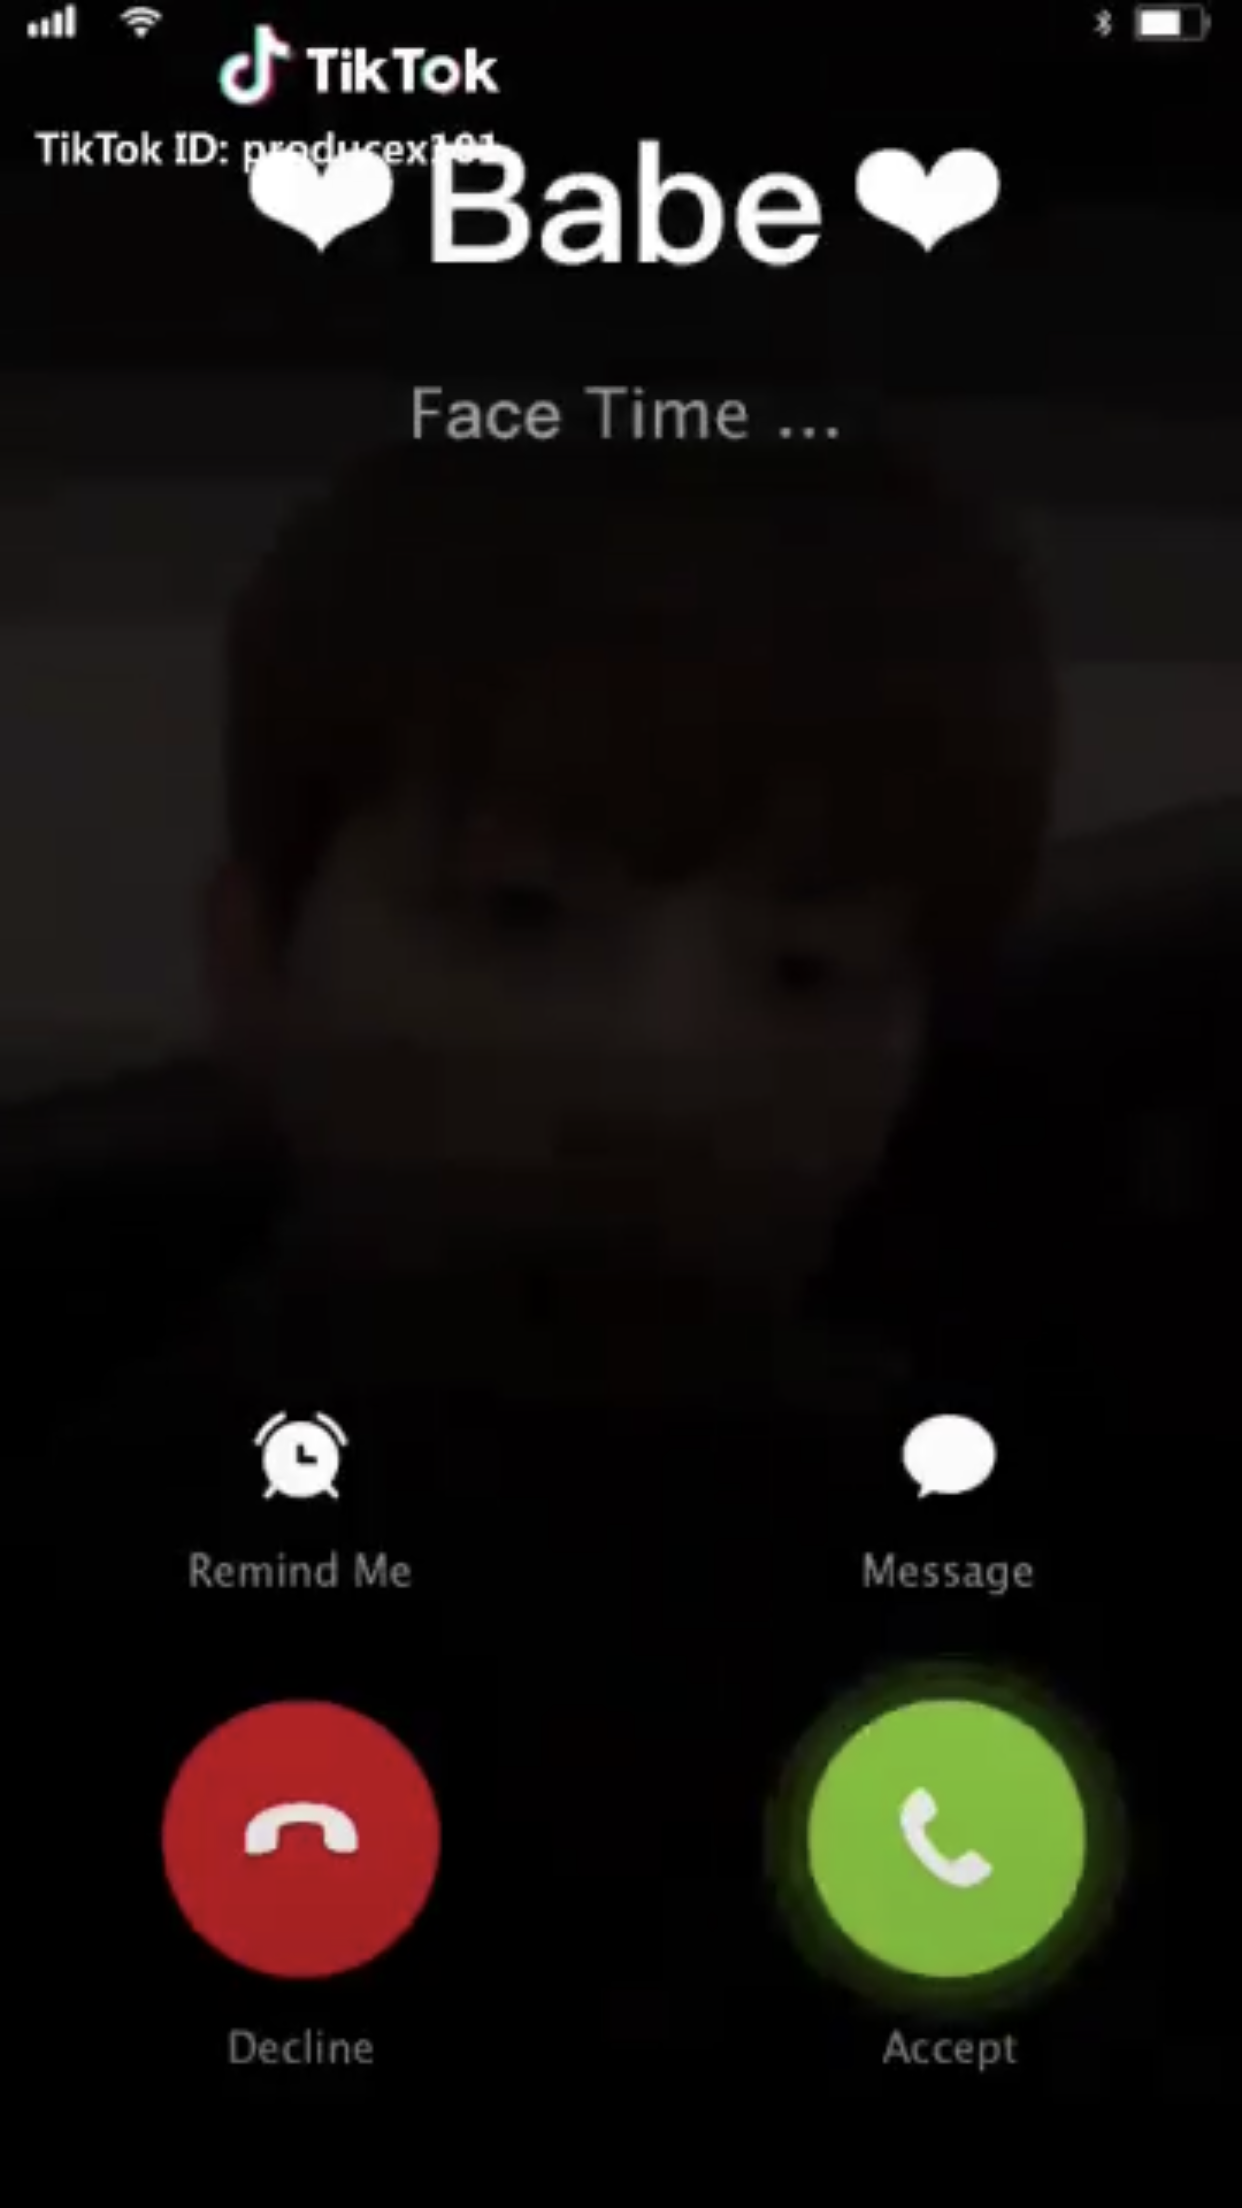 Pick Up A Video Call From Sihun